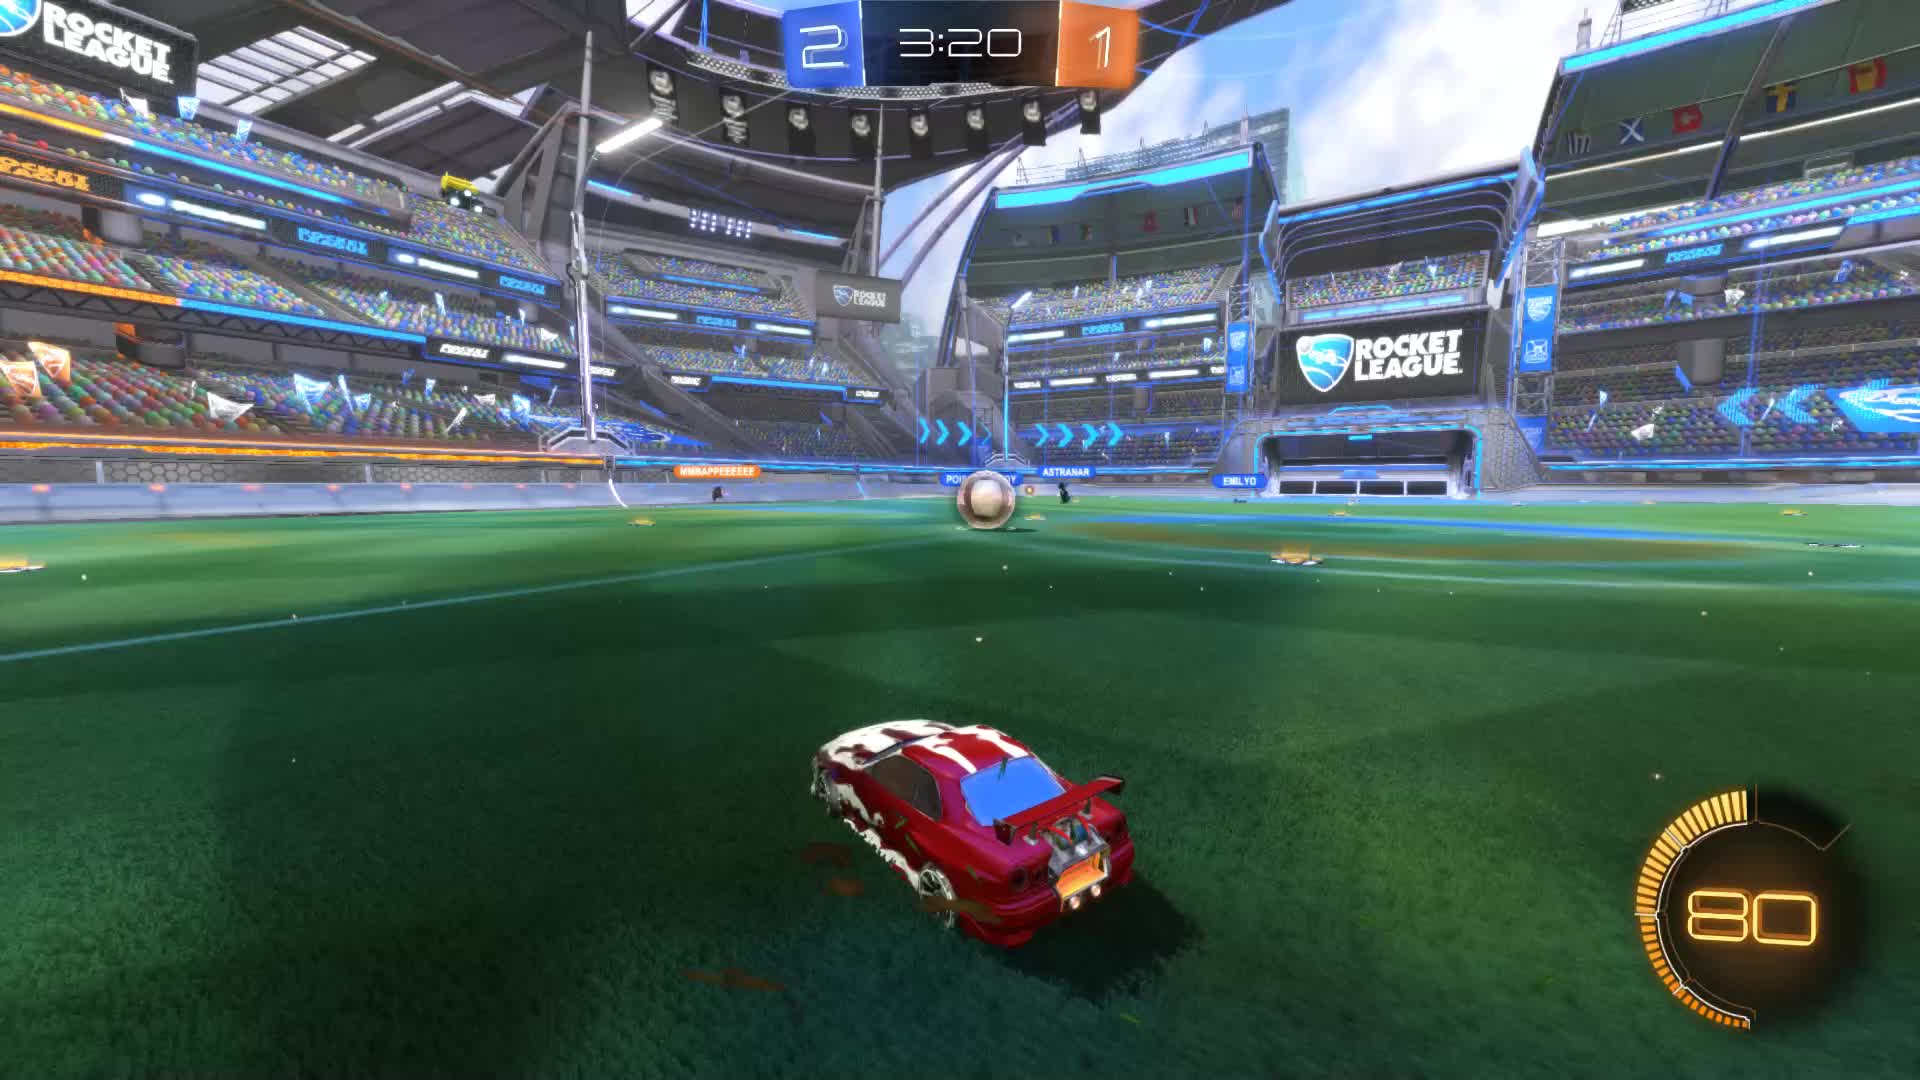 Gif Your Game, GifYourGame, Rocket League, RocketLeague, SCOTLAND FOREVER, Goal 4: SCOTLAND FOREVER GIFs